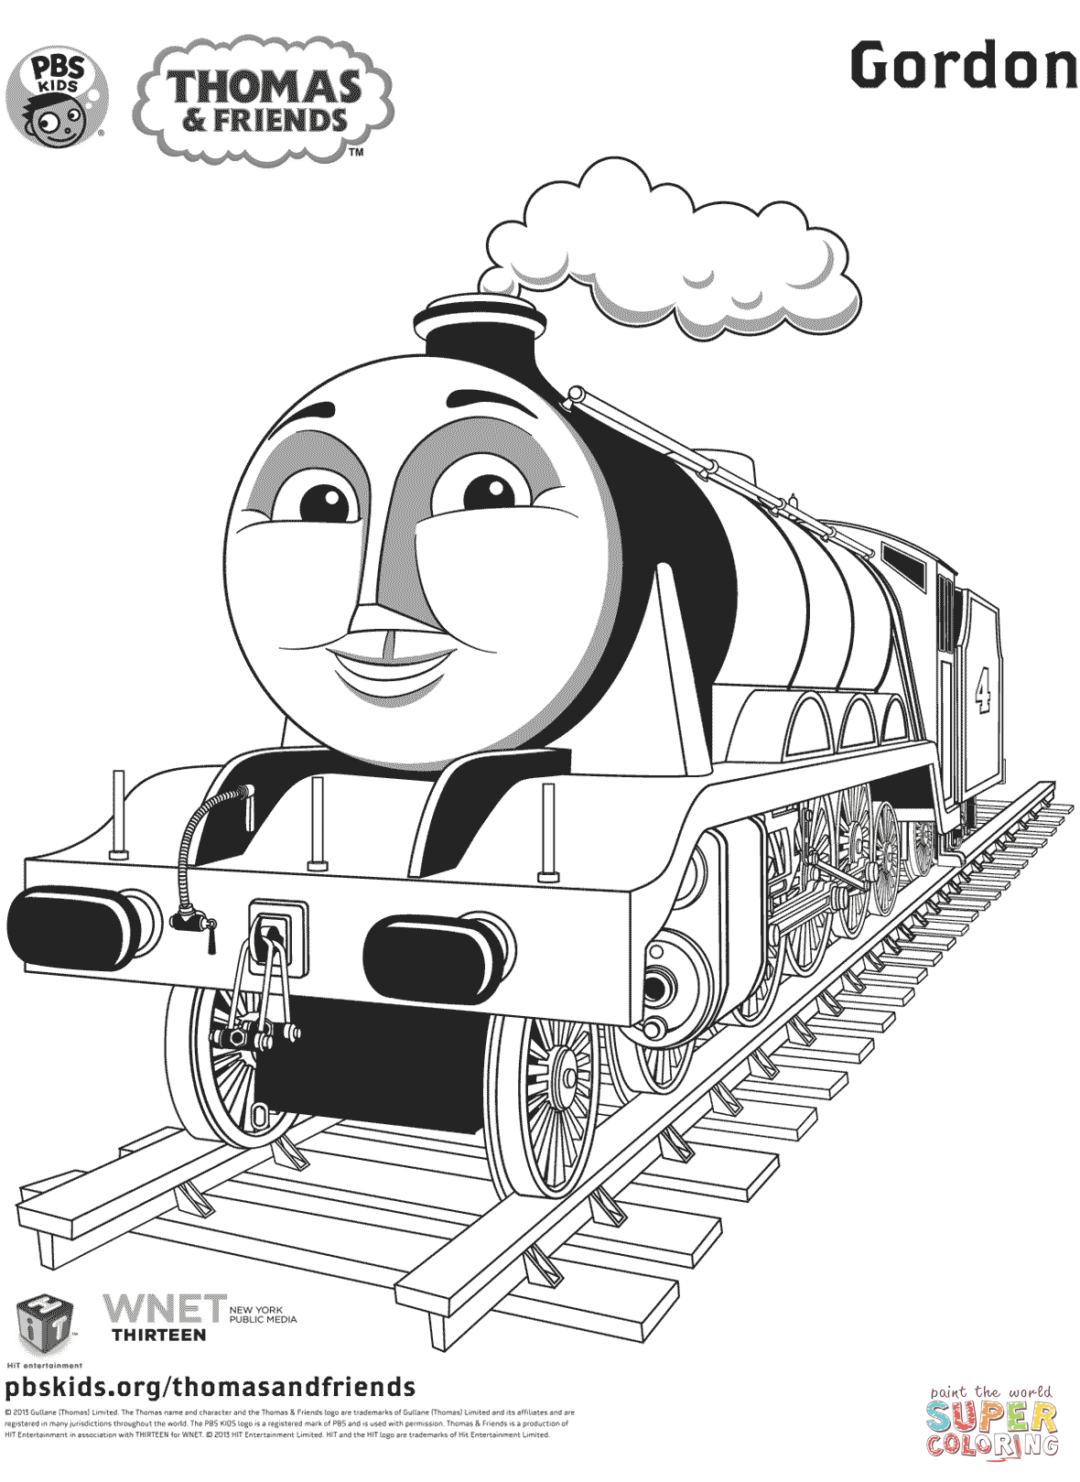 thomas and friends coloring thomas and friends coloring pages awesome simple thomas and coloring friends thomas